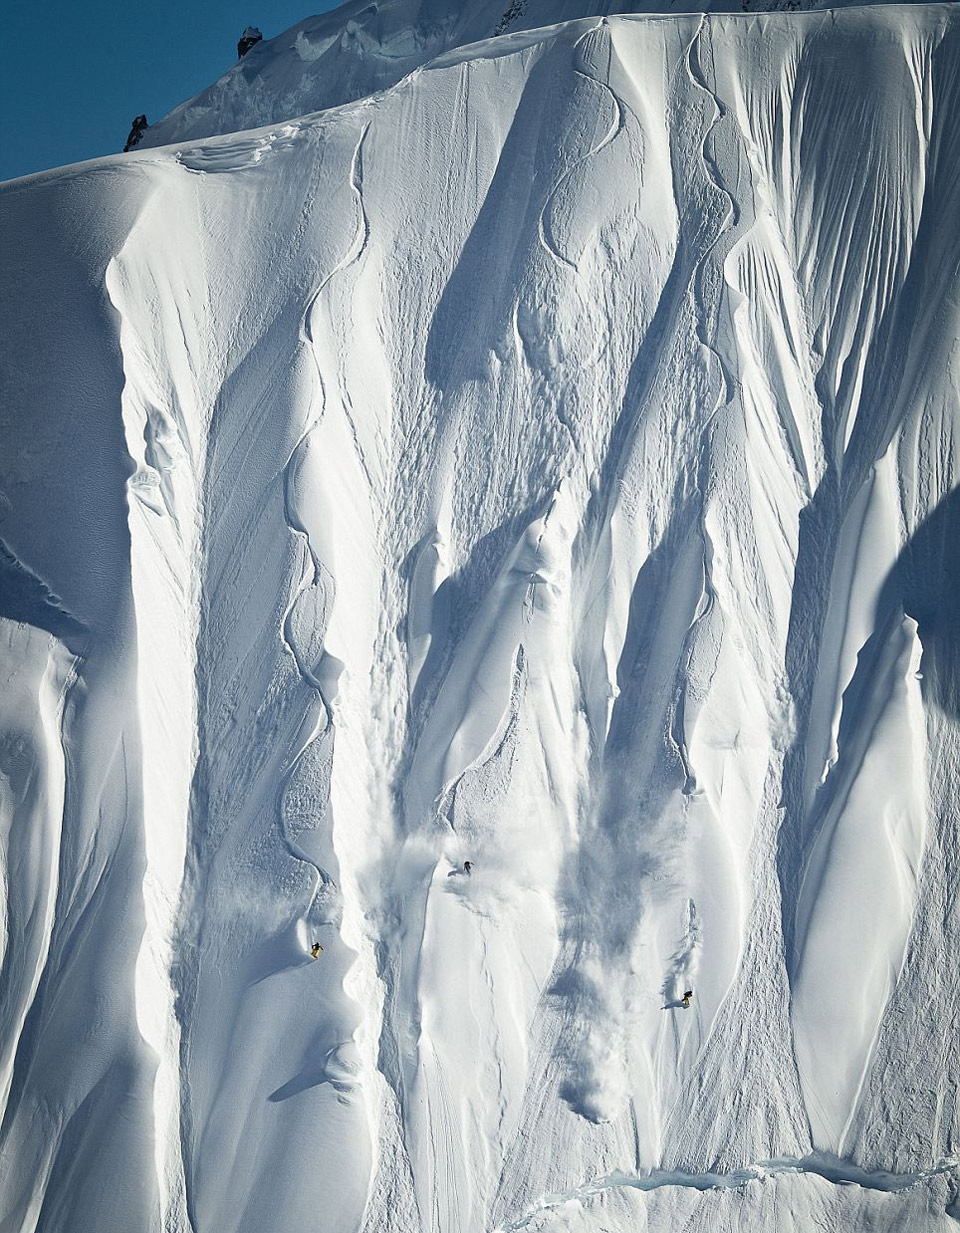 77first-snowboarders-to-conquer-vertical-alaskan-slope